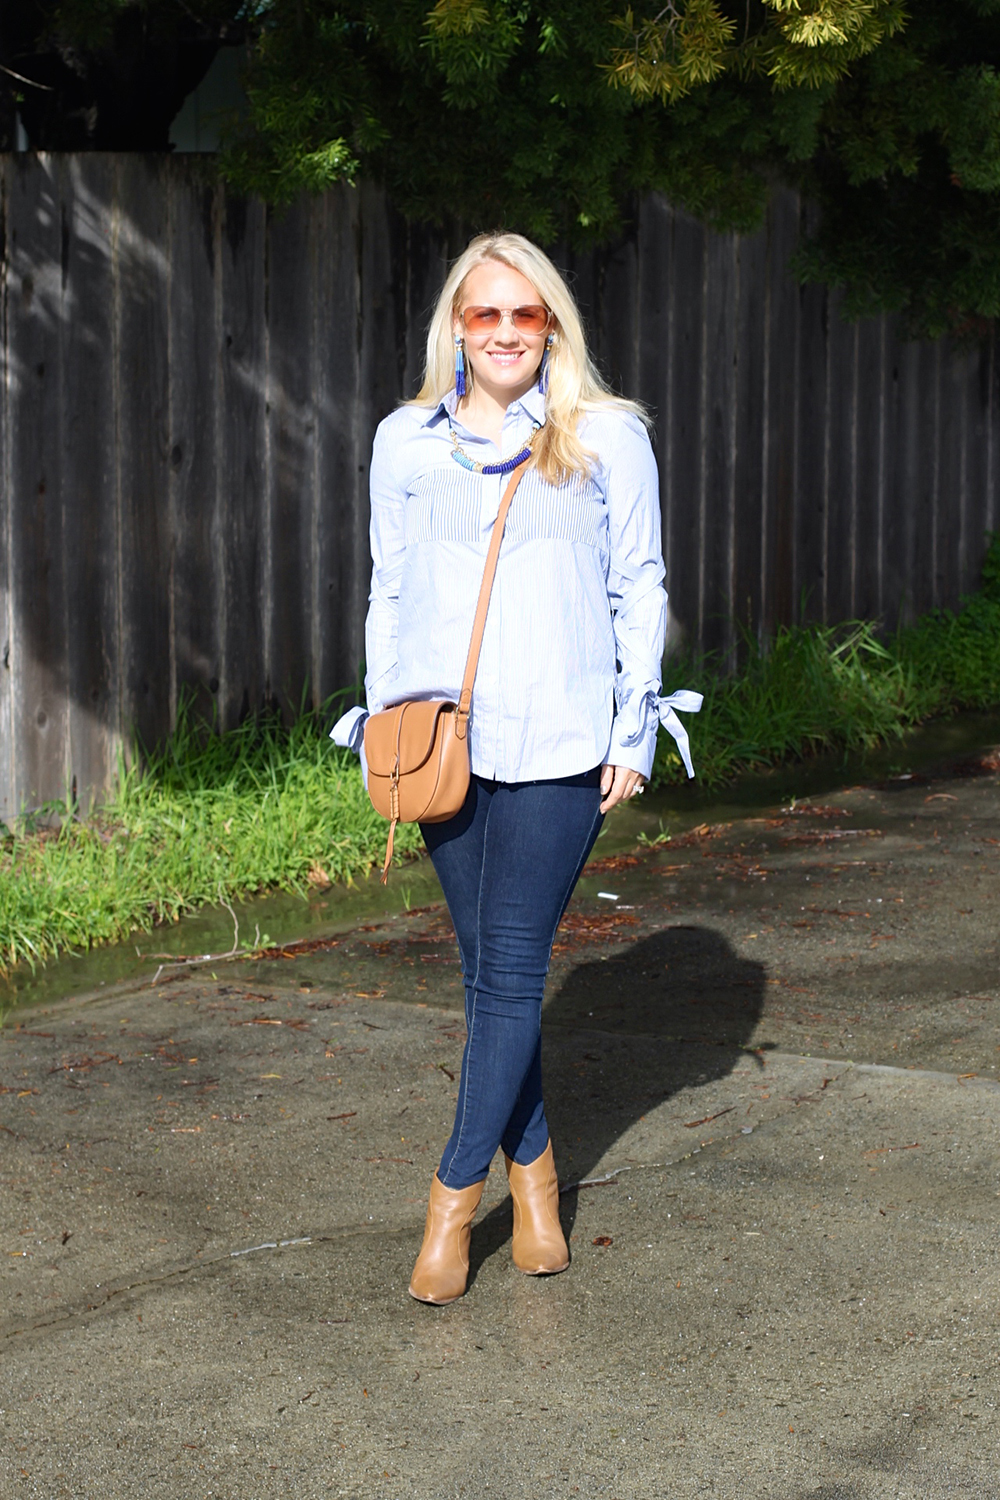 Tie Up Sleeve Blouse-Tibi Stripe Button Down-Outfit Inspiration-Have Need Want 2